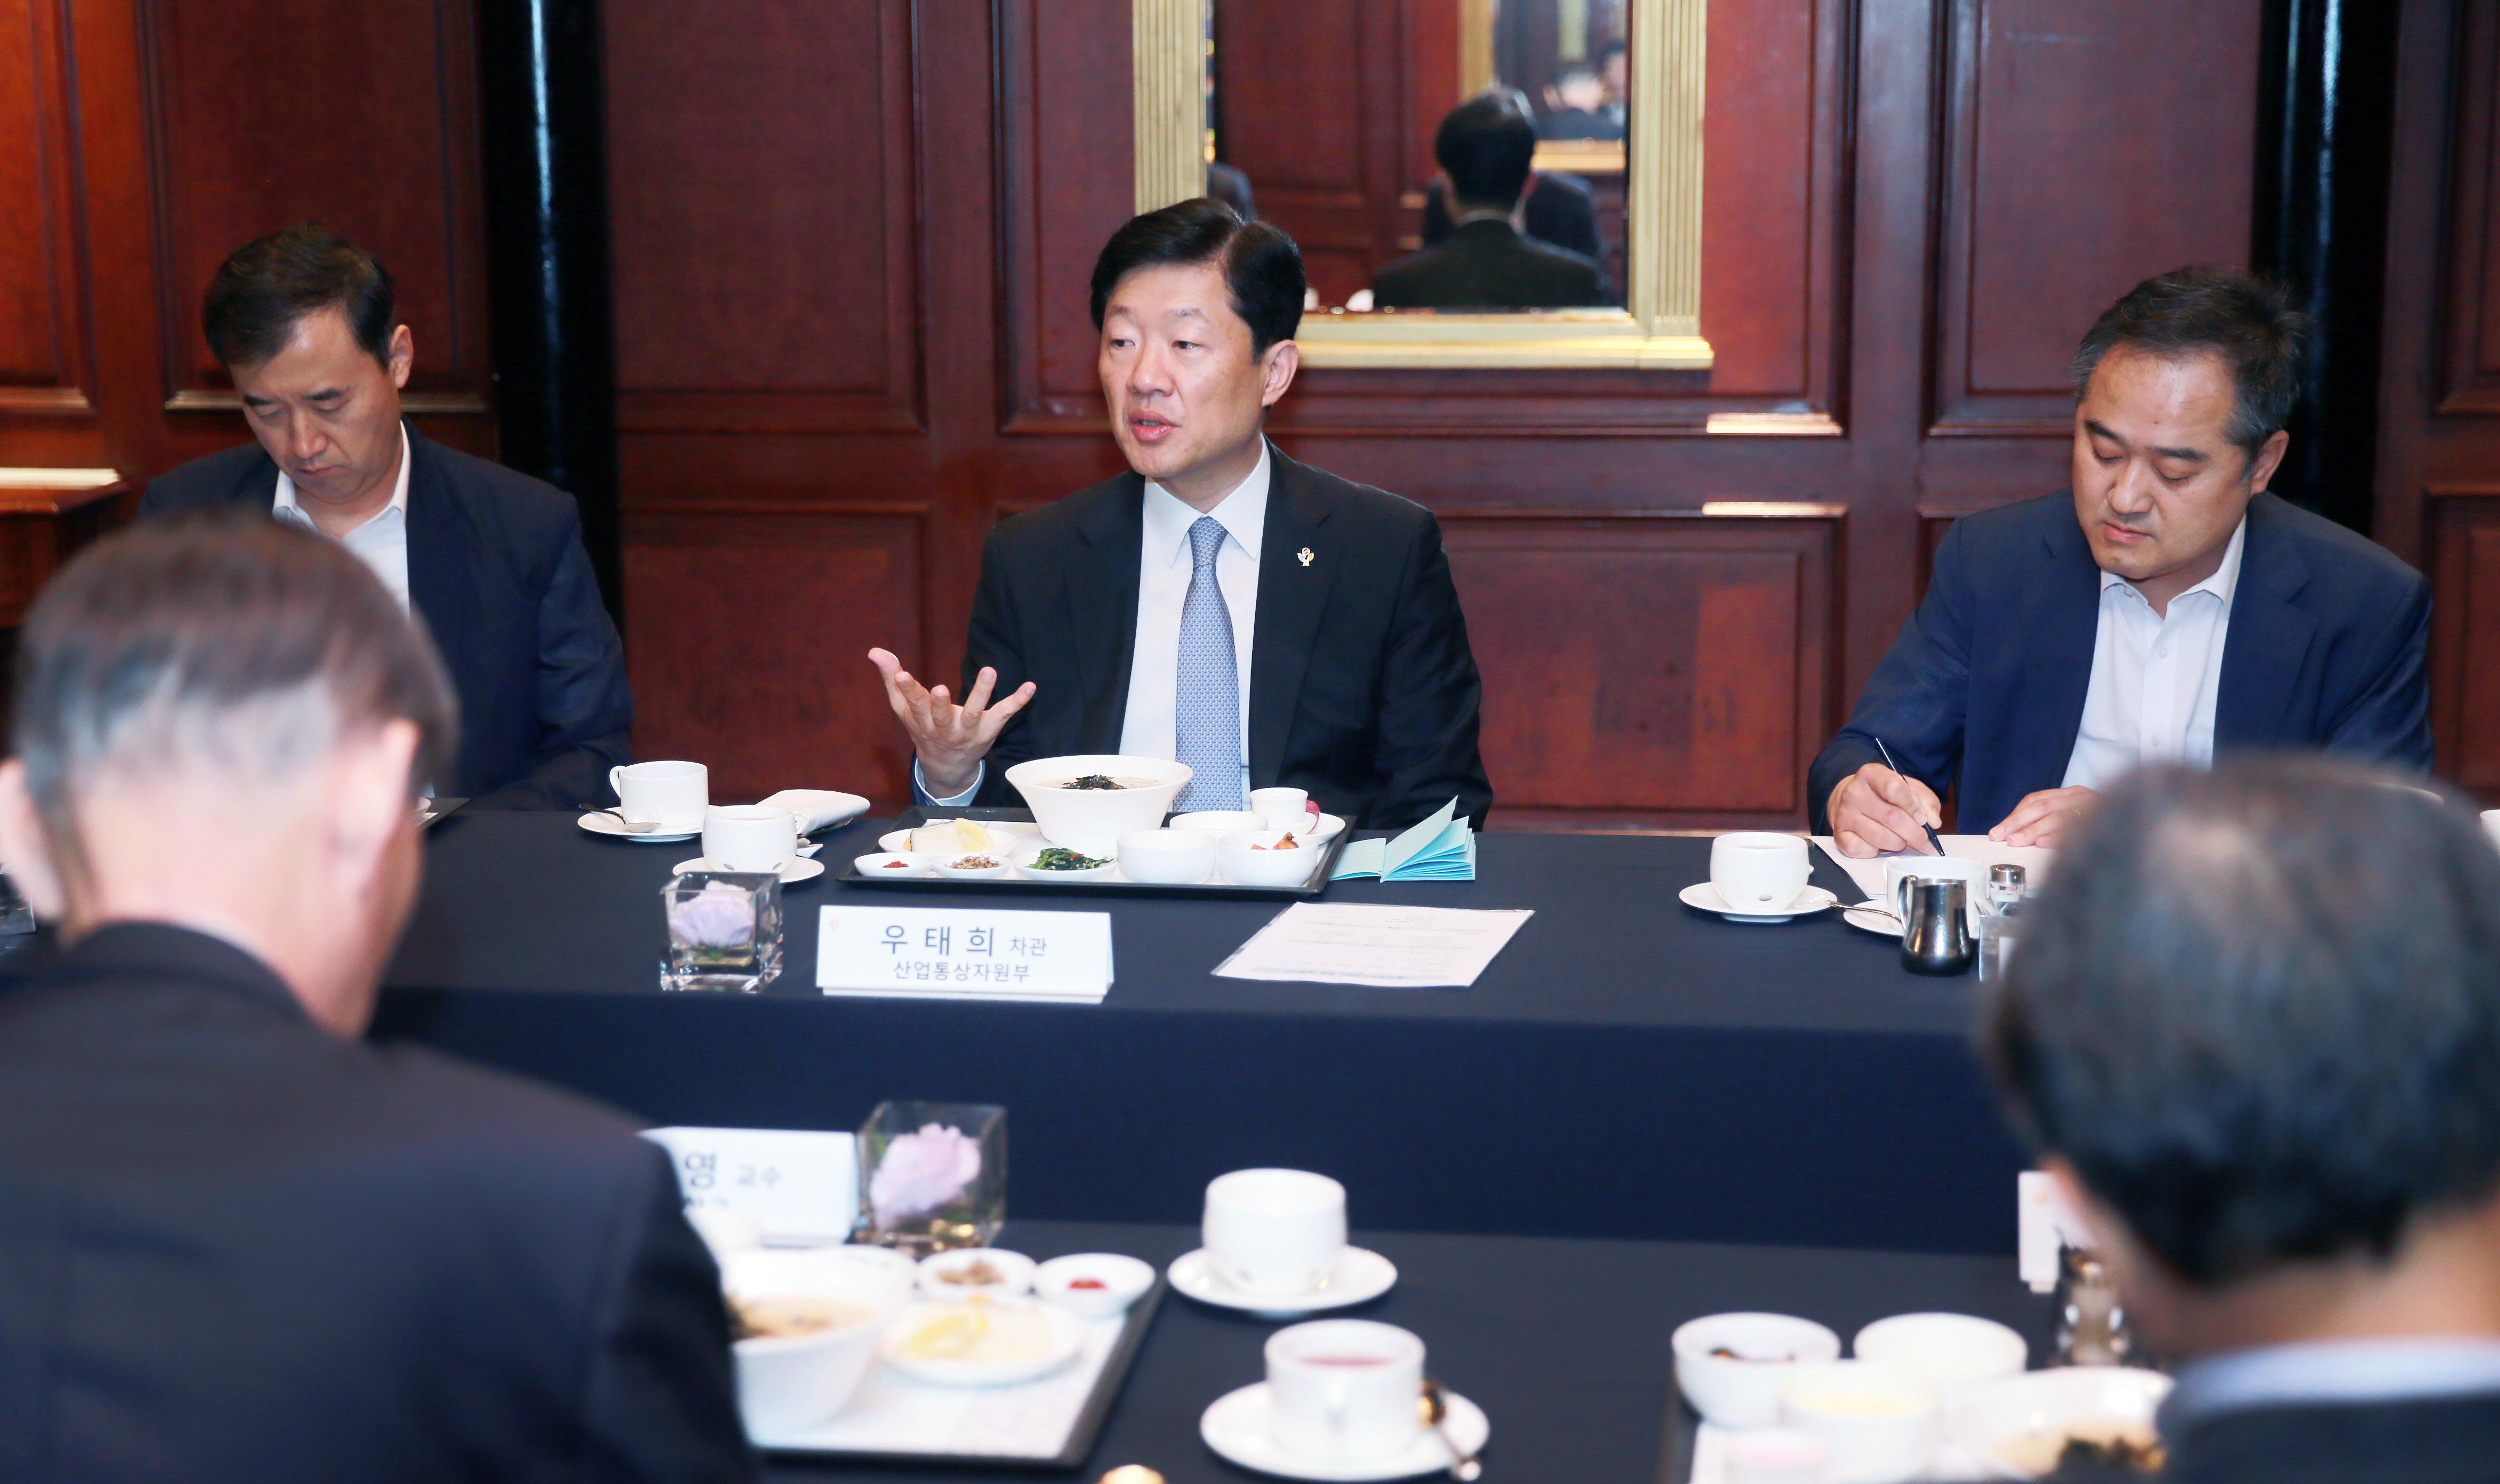 Vice Minister Woo presides 'trade policy meeting'